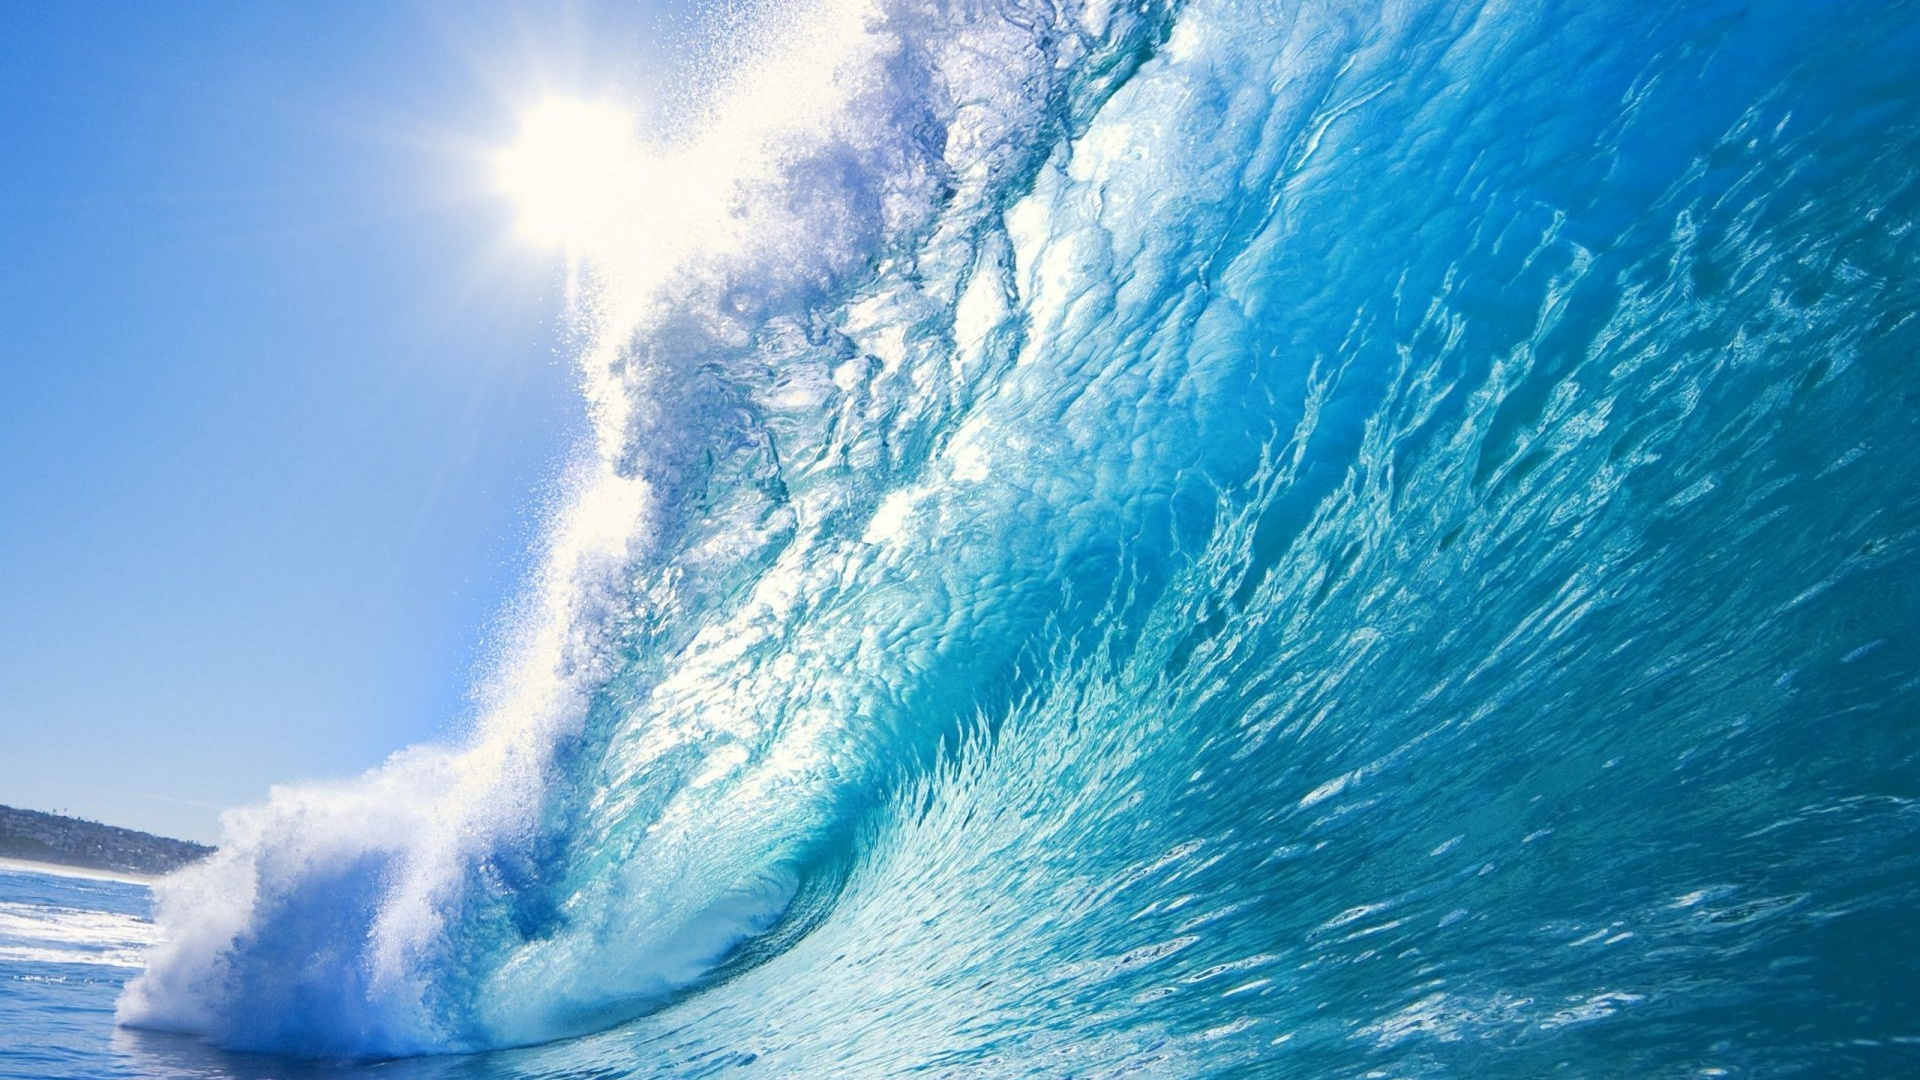 1920x1080 beautiful ocean wave desktop pc and mac wallpaper